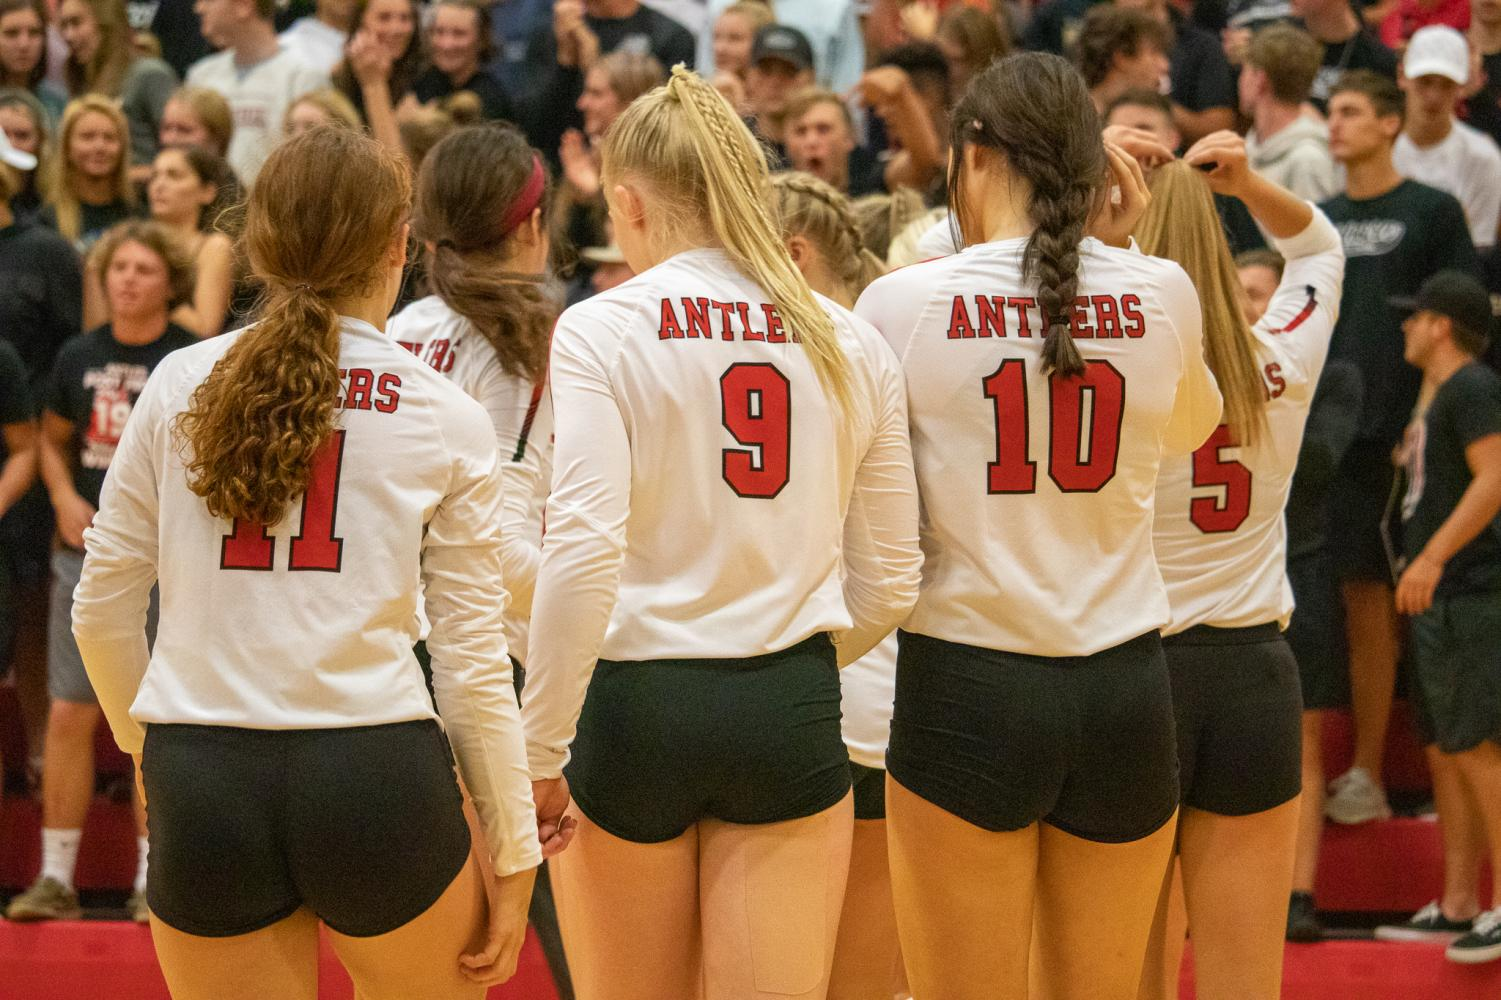 Antler+volleyball+players+walking+out+to+line+up+for+introductions.